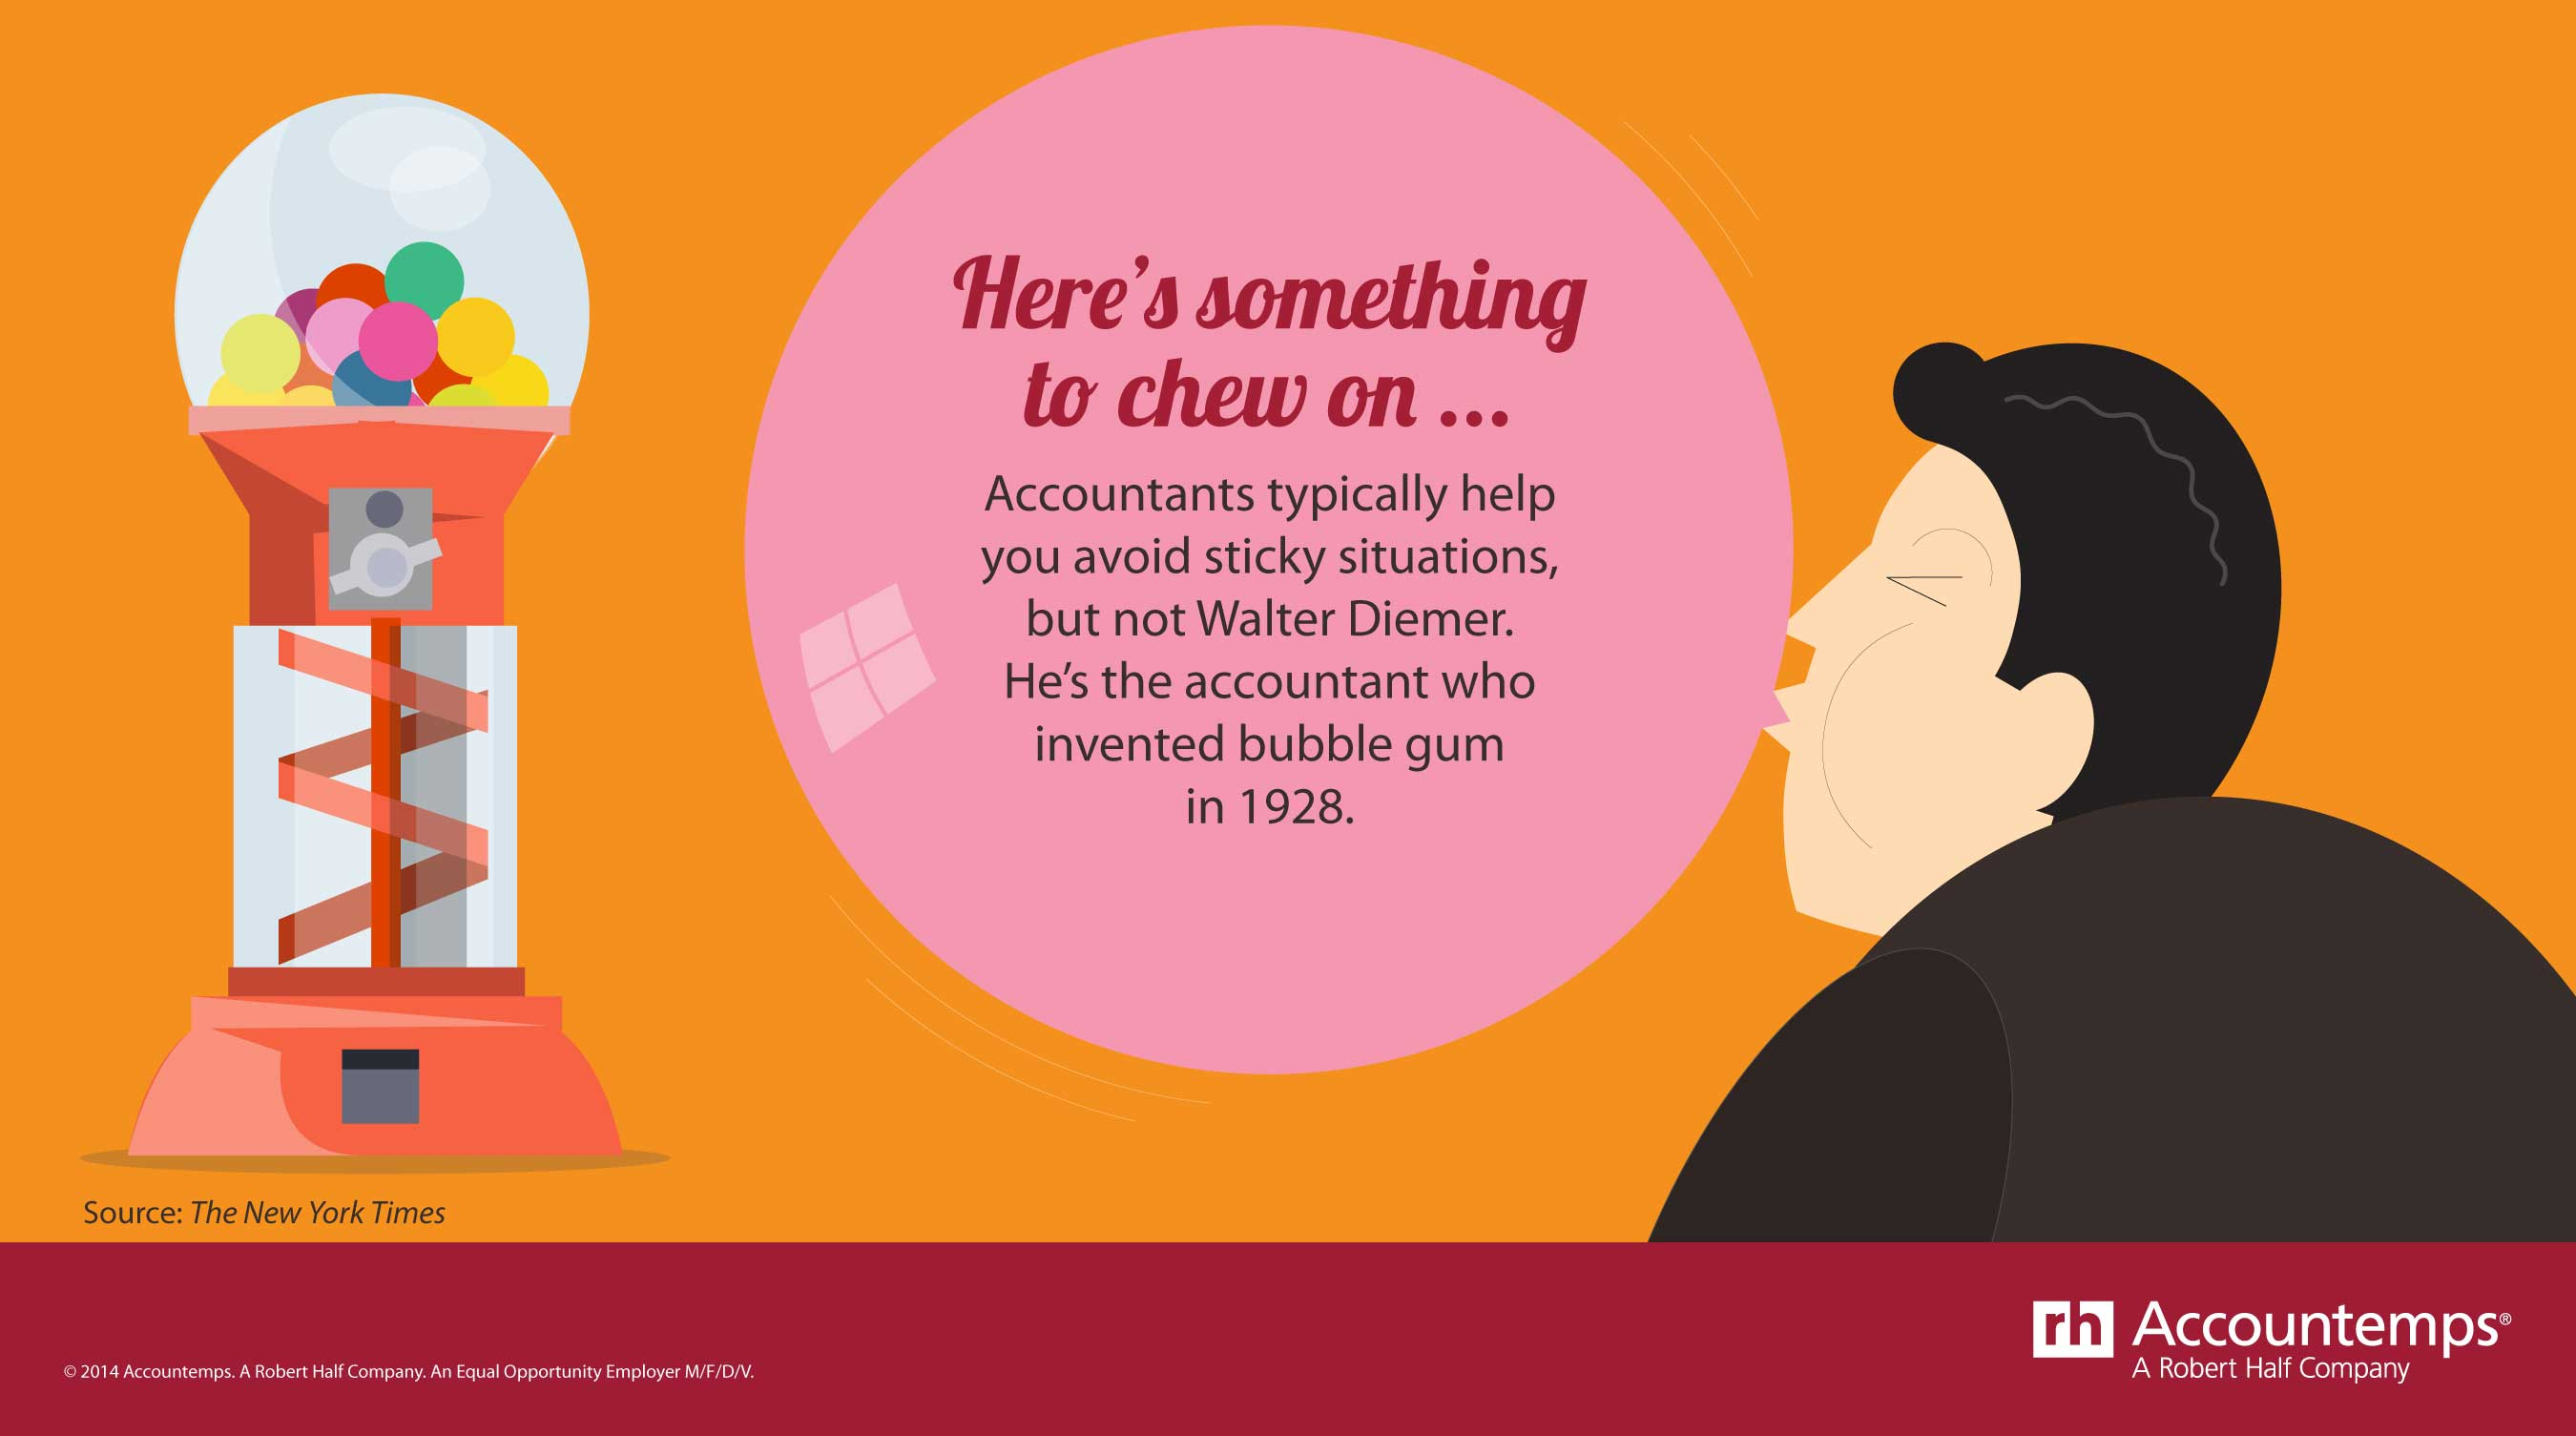 Accountants typically help you avoid sticky situations, but not Walter Diemer. He's the accountant who invented bubble gum in 1928.